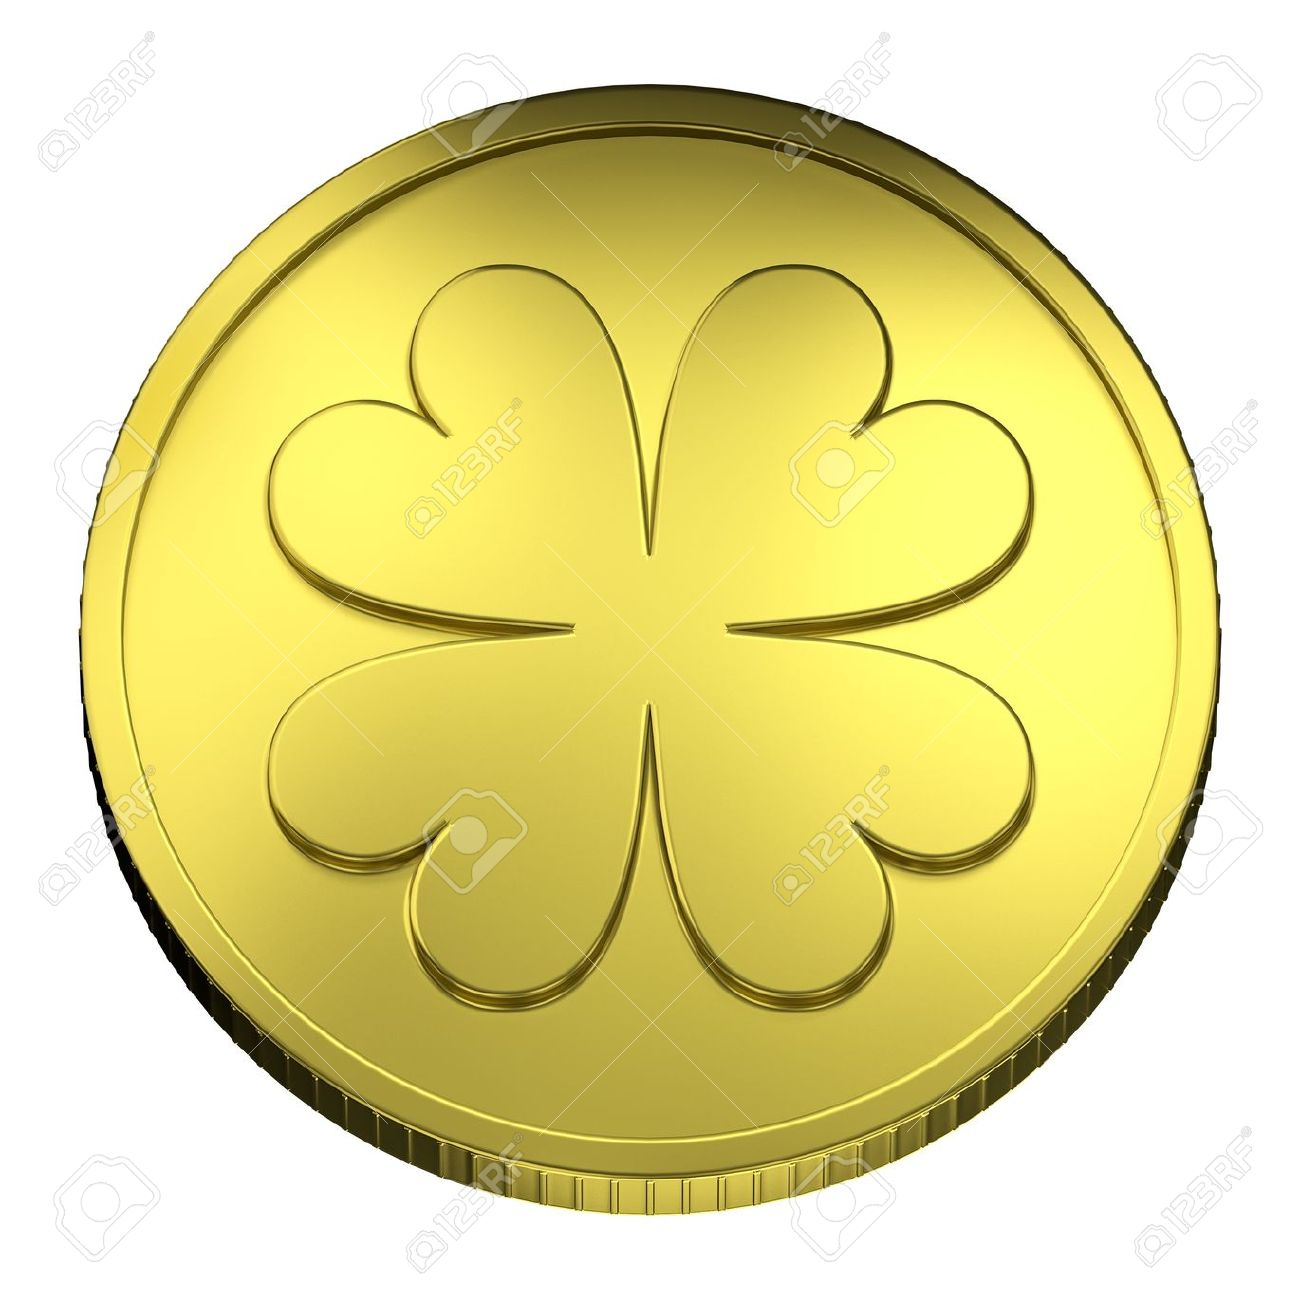 Top View Of Gold Coin Representing A Quatrefoil, Symbol Of Lucky.